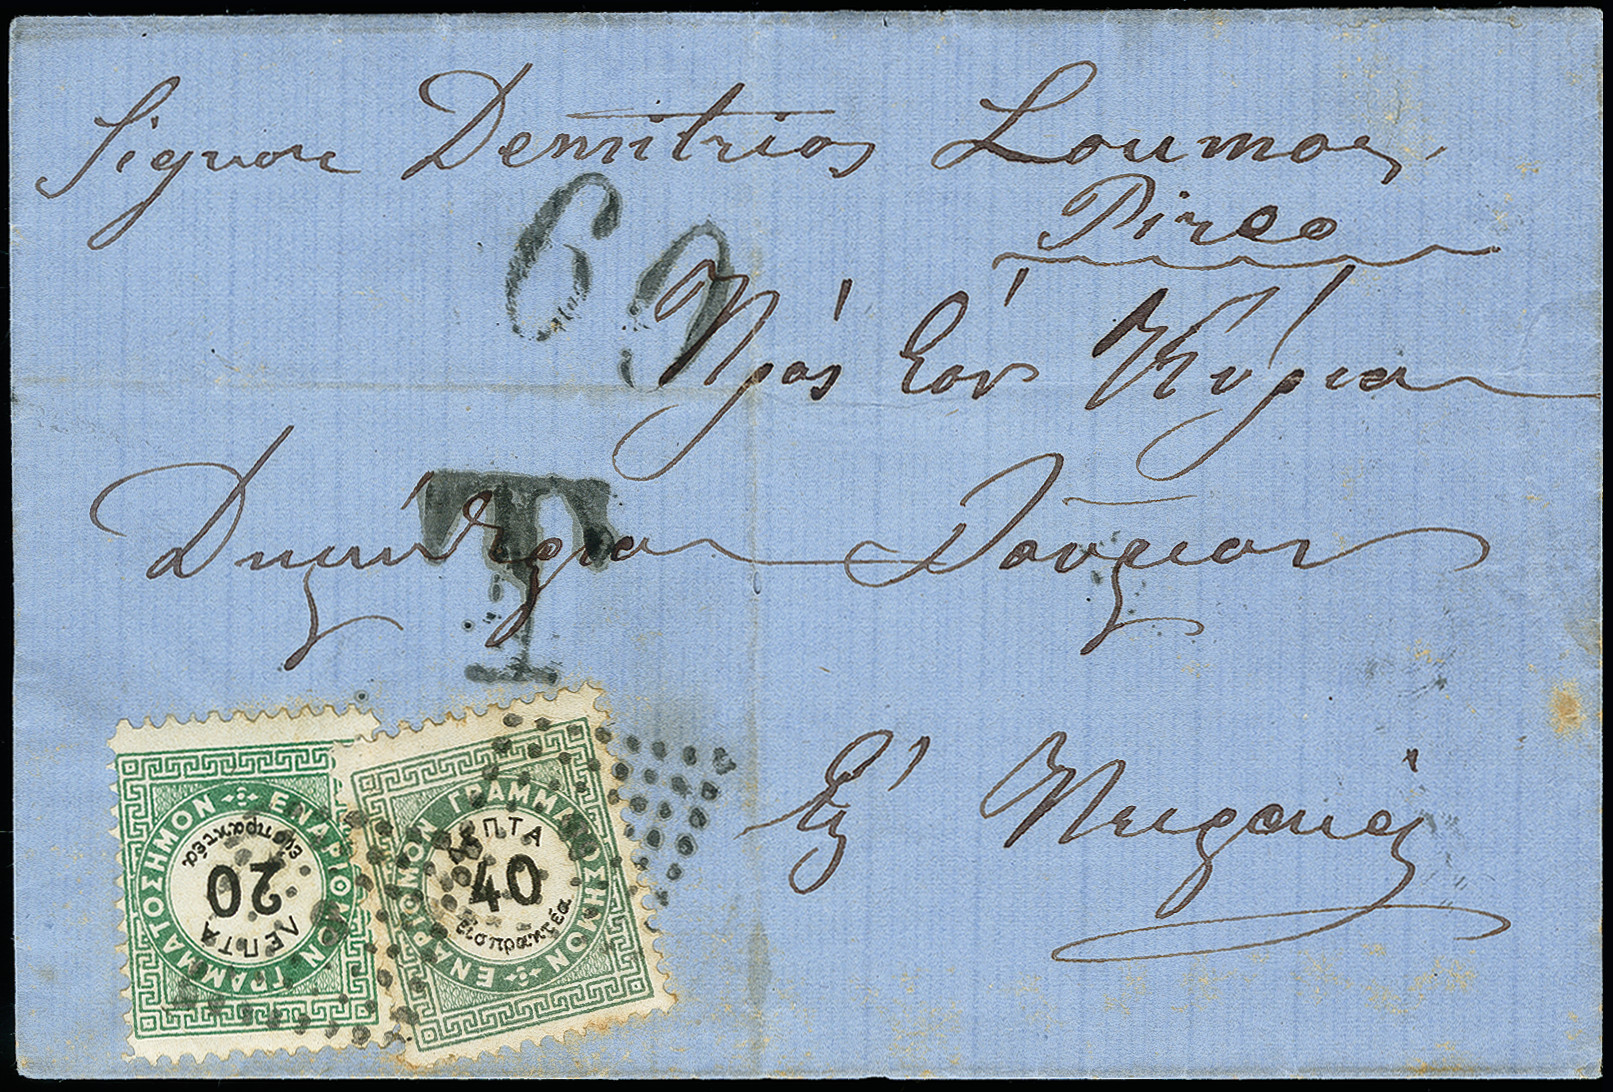 Lot 498 - Greece Greece - Postage Due -  Heinrich Koehler Auktionen 373rd Heinrich Köhler auction - Day 1